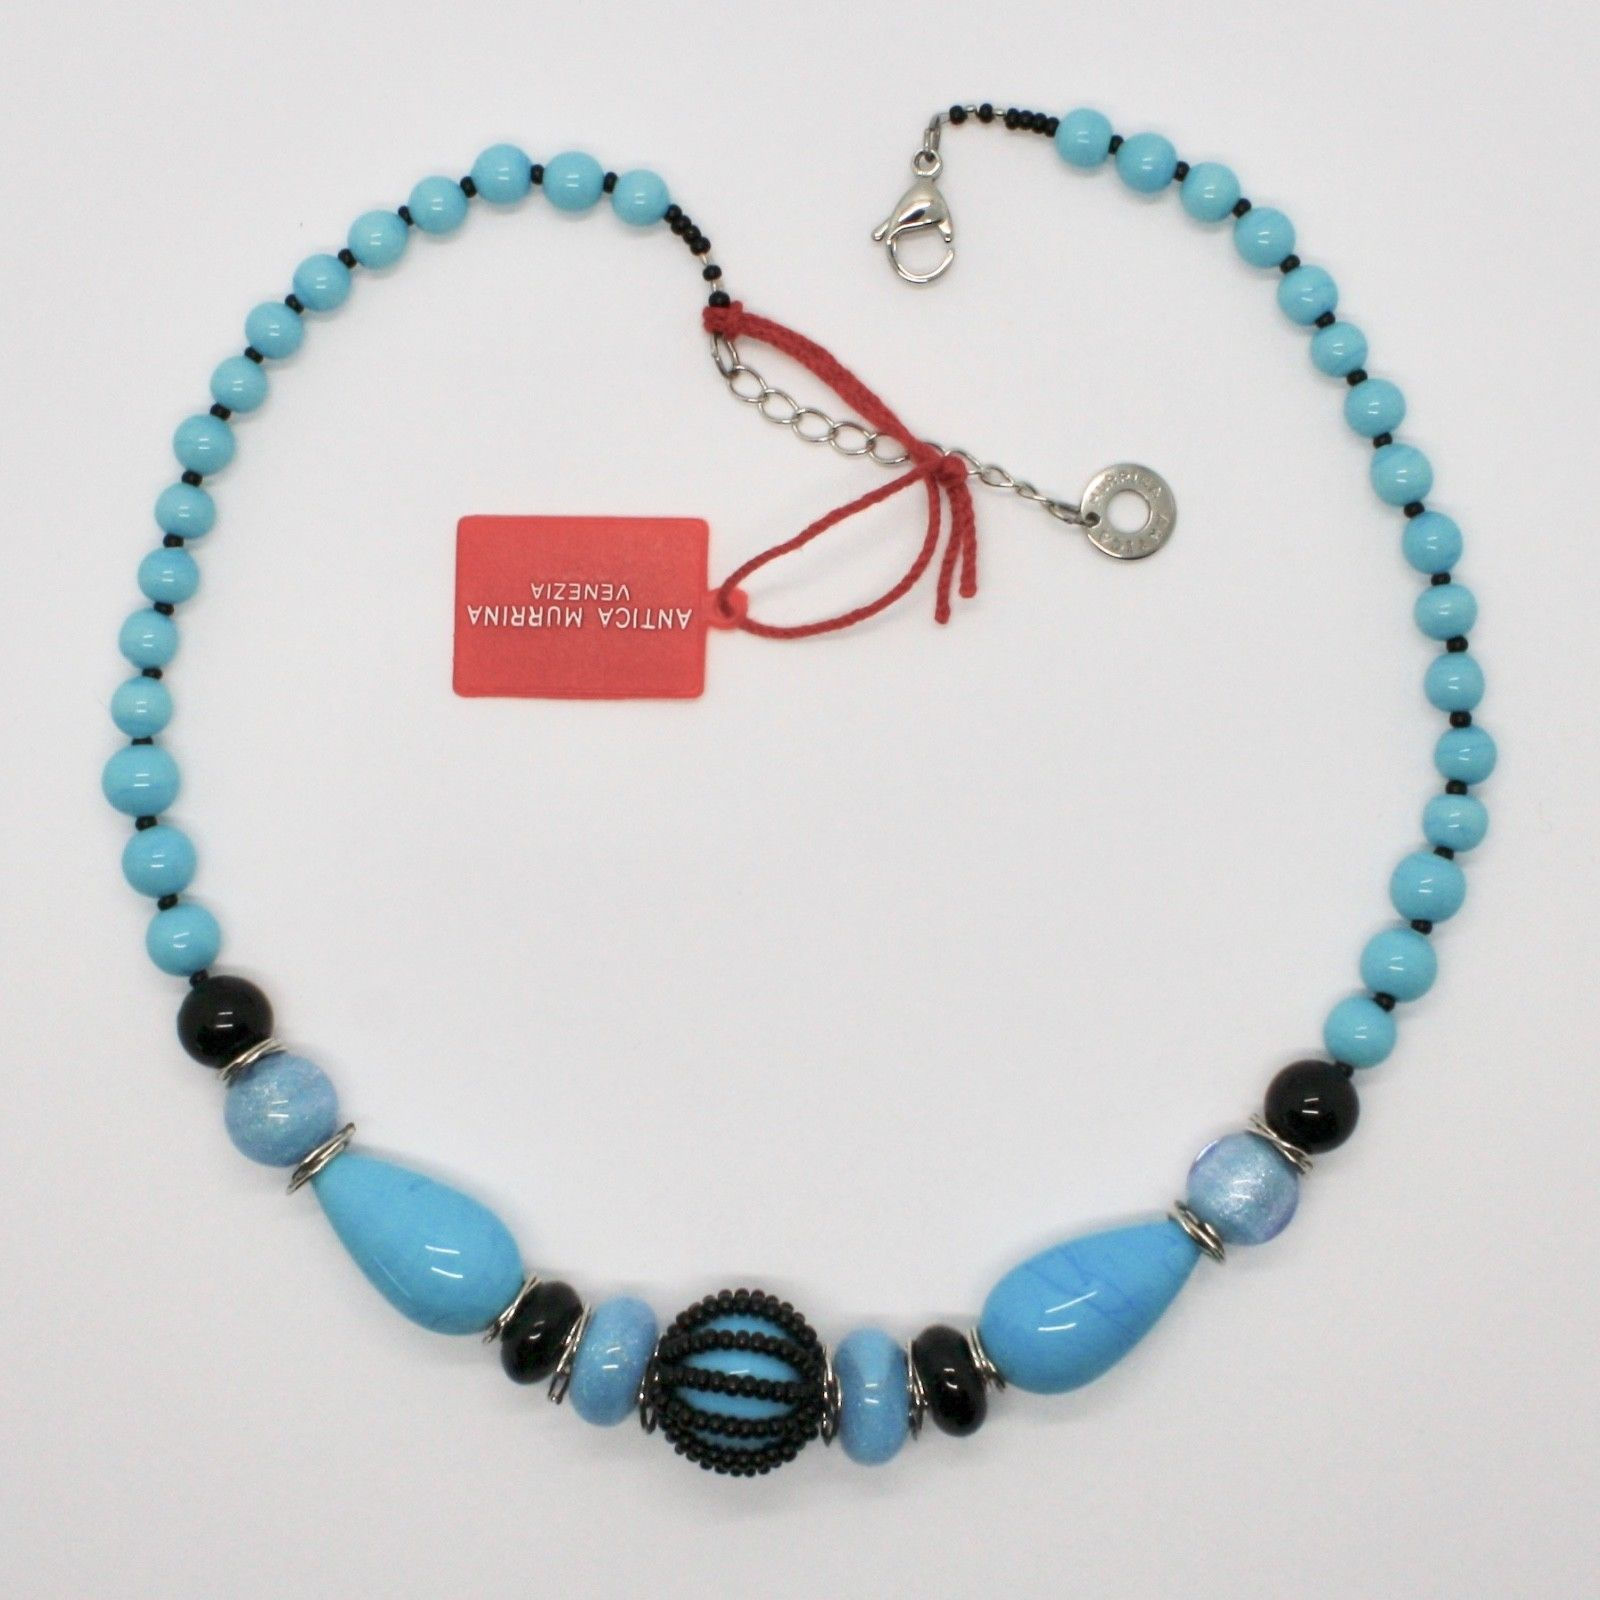 ANTICA MURRINA VENEZIA NECKLACE WITH MURANO GLASS BLACK BLUE TURQUOISE COA07A02